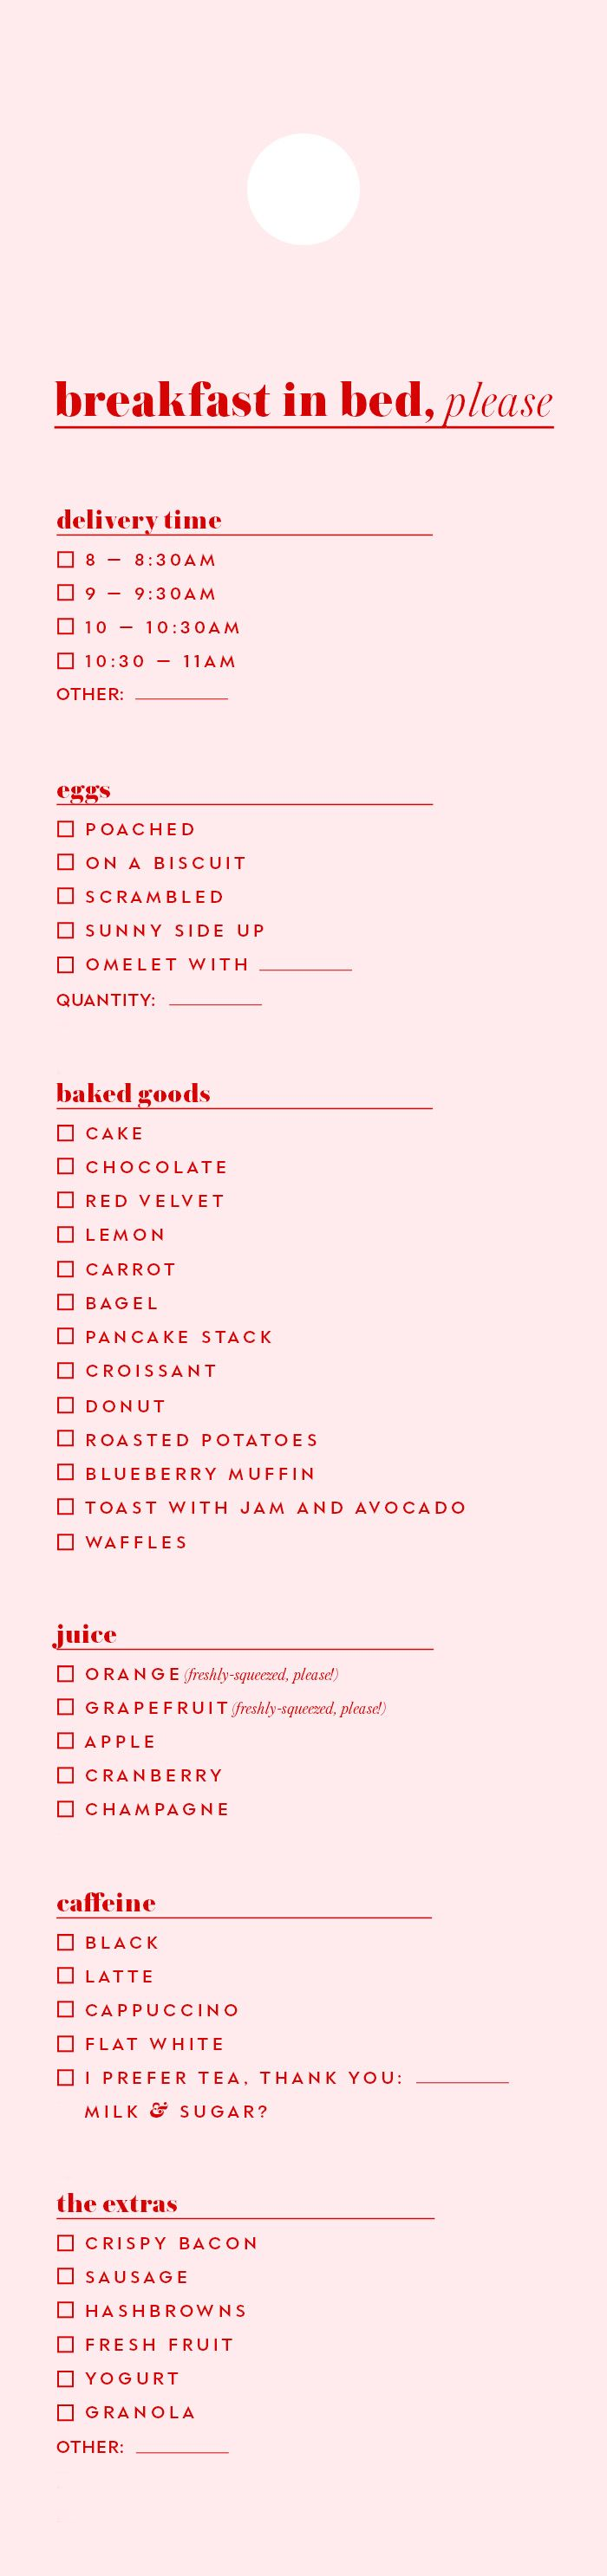 Breakfast In Bed by katespade: Room service, no hotel required. Downloadable menu. #Menu #Breakfast_in_Bed #Free_Download